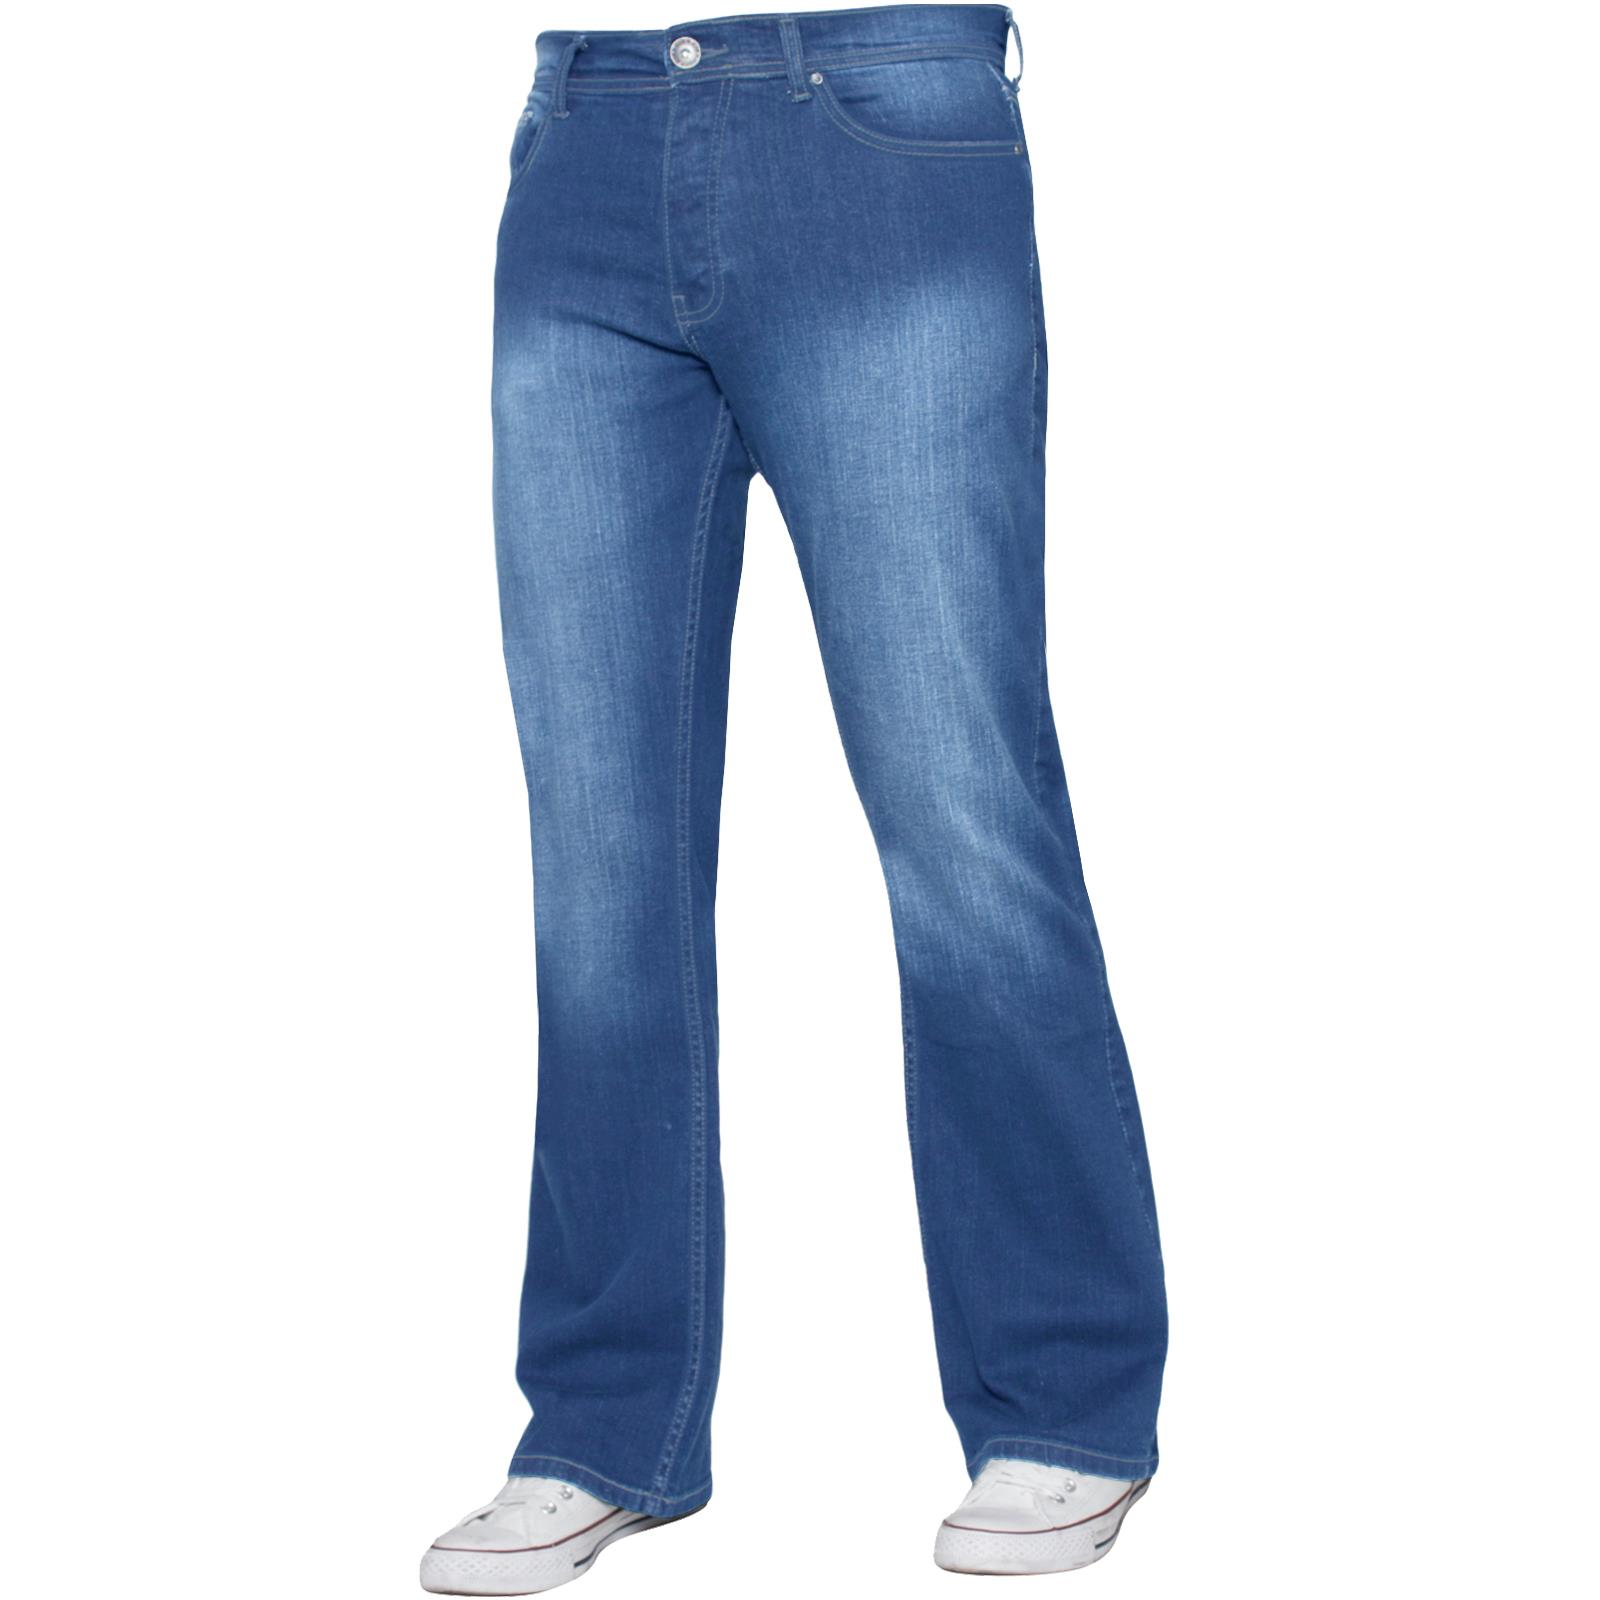 Mens-Straight-Bootcut-Jeans-Stretch-Denim-Pants-Regular-Fit-Big-Tall-All-Waists thumbnail 41